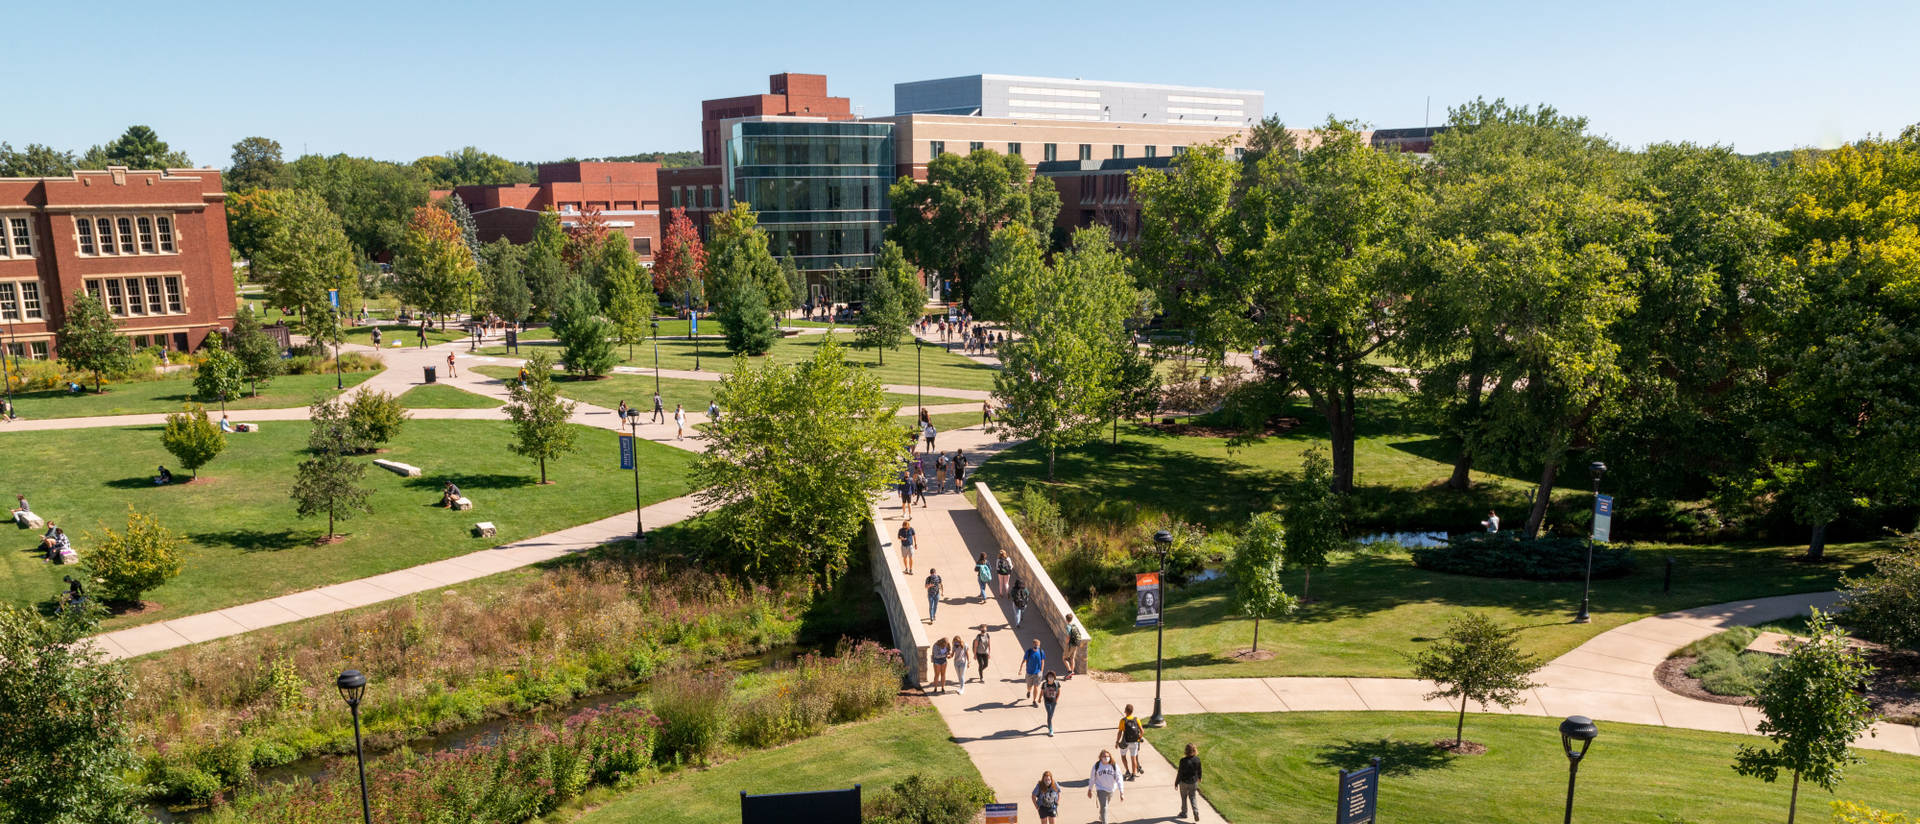 Campus mall on sunny day